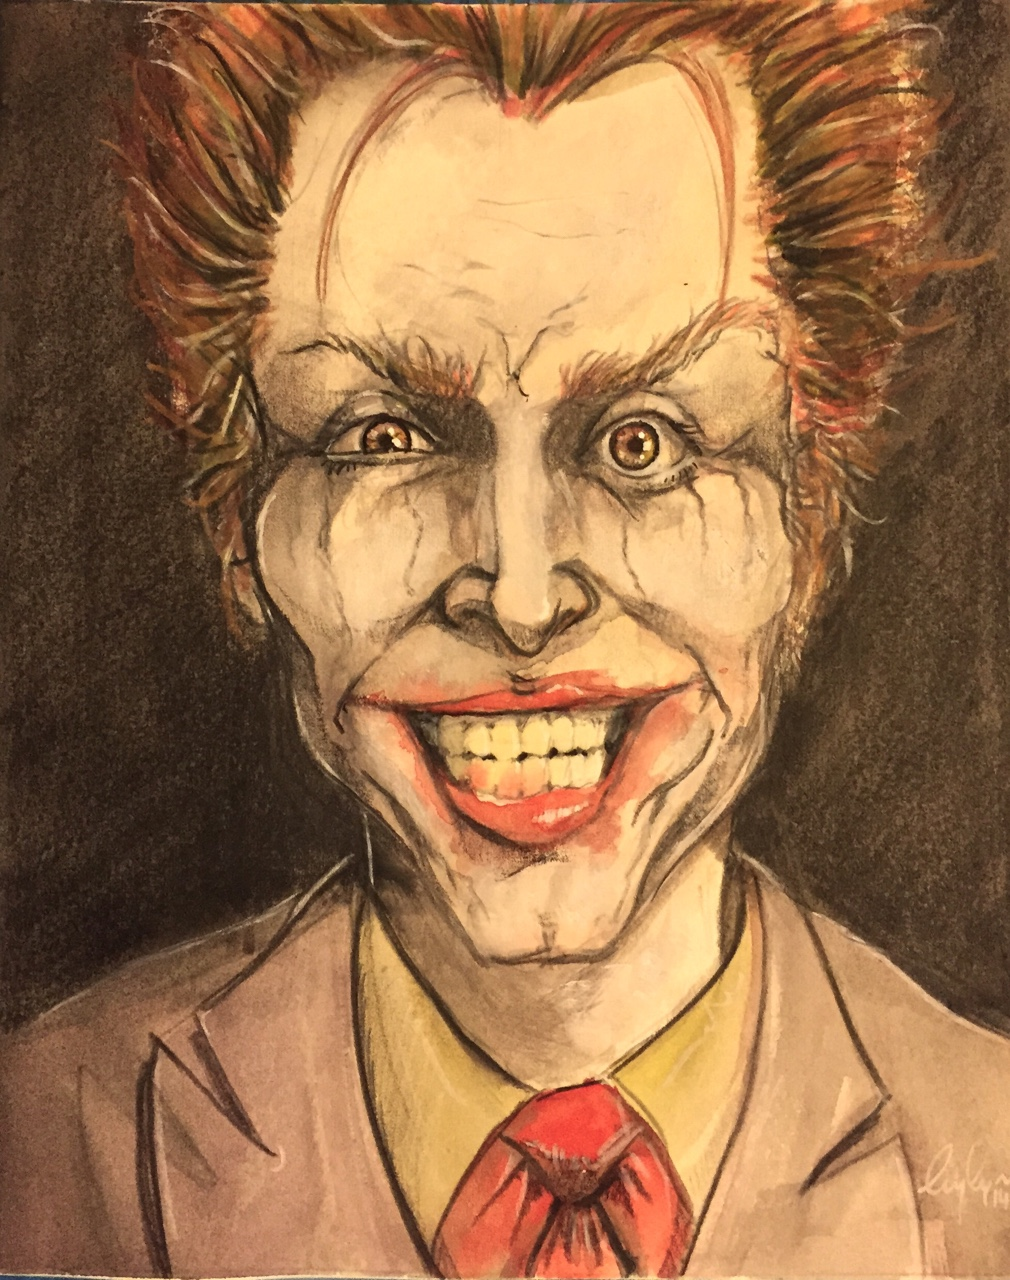 I did this painting of The Joker with the purpose of auctioning it off. The proceeds will go to benefit Norm Breyfogle (Legendary Batman comic artist) who recently had a terrible stroke. Link Below: http://pages.ebay.com/link/?nav=item.view&alt=web&id=271727833538